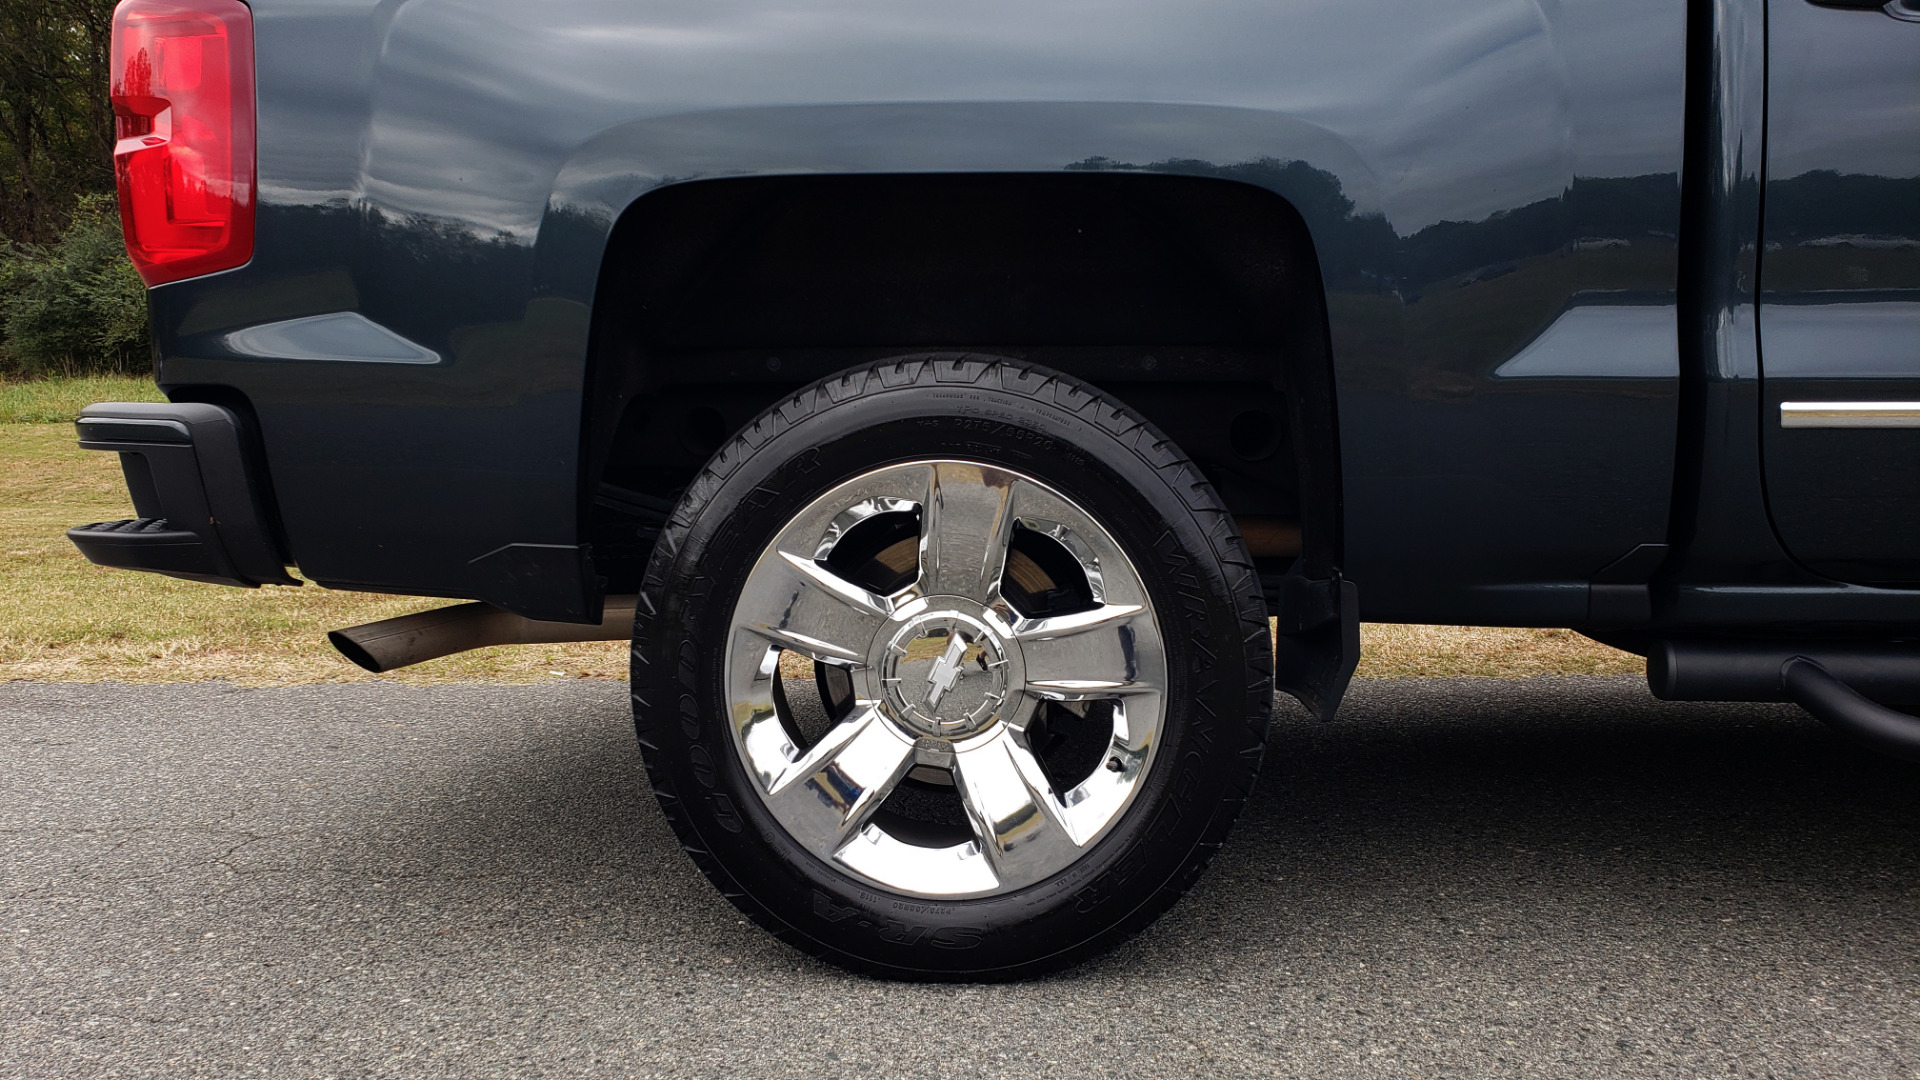 Used 2017 Chevrolet SILVERADO 1500 LTZ 4WD / NAV / BOSE / LEATHER / CAMERA / LOADED for sale Sold at Formula Imports in Charlotte NC 28227 28